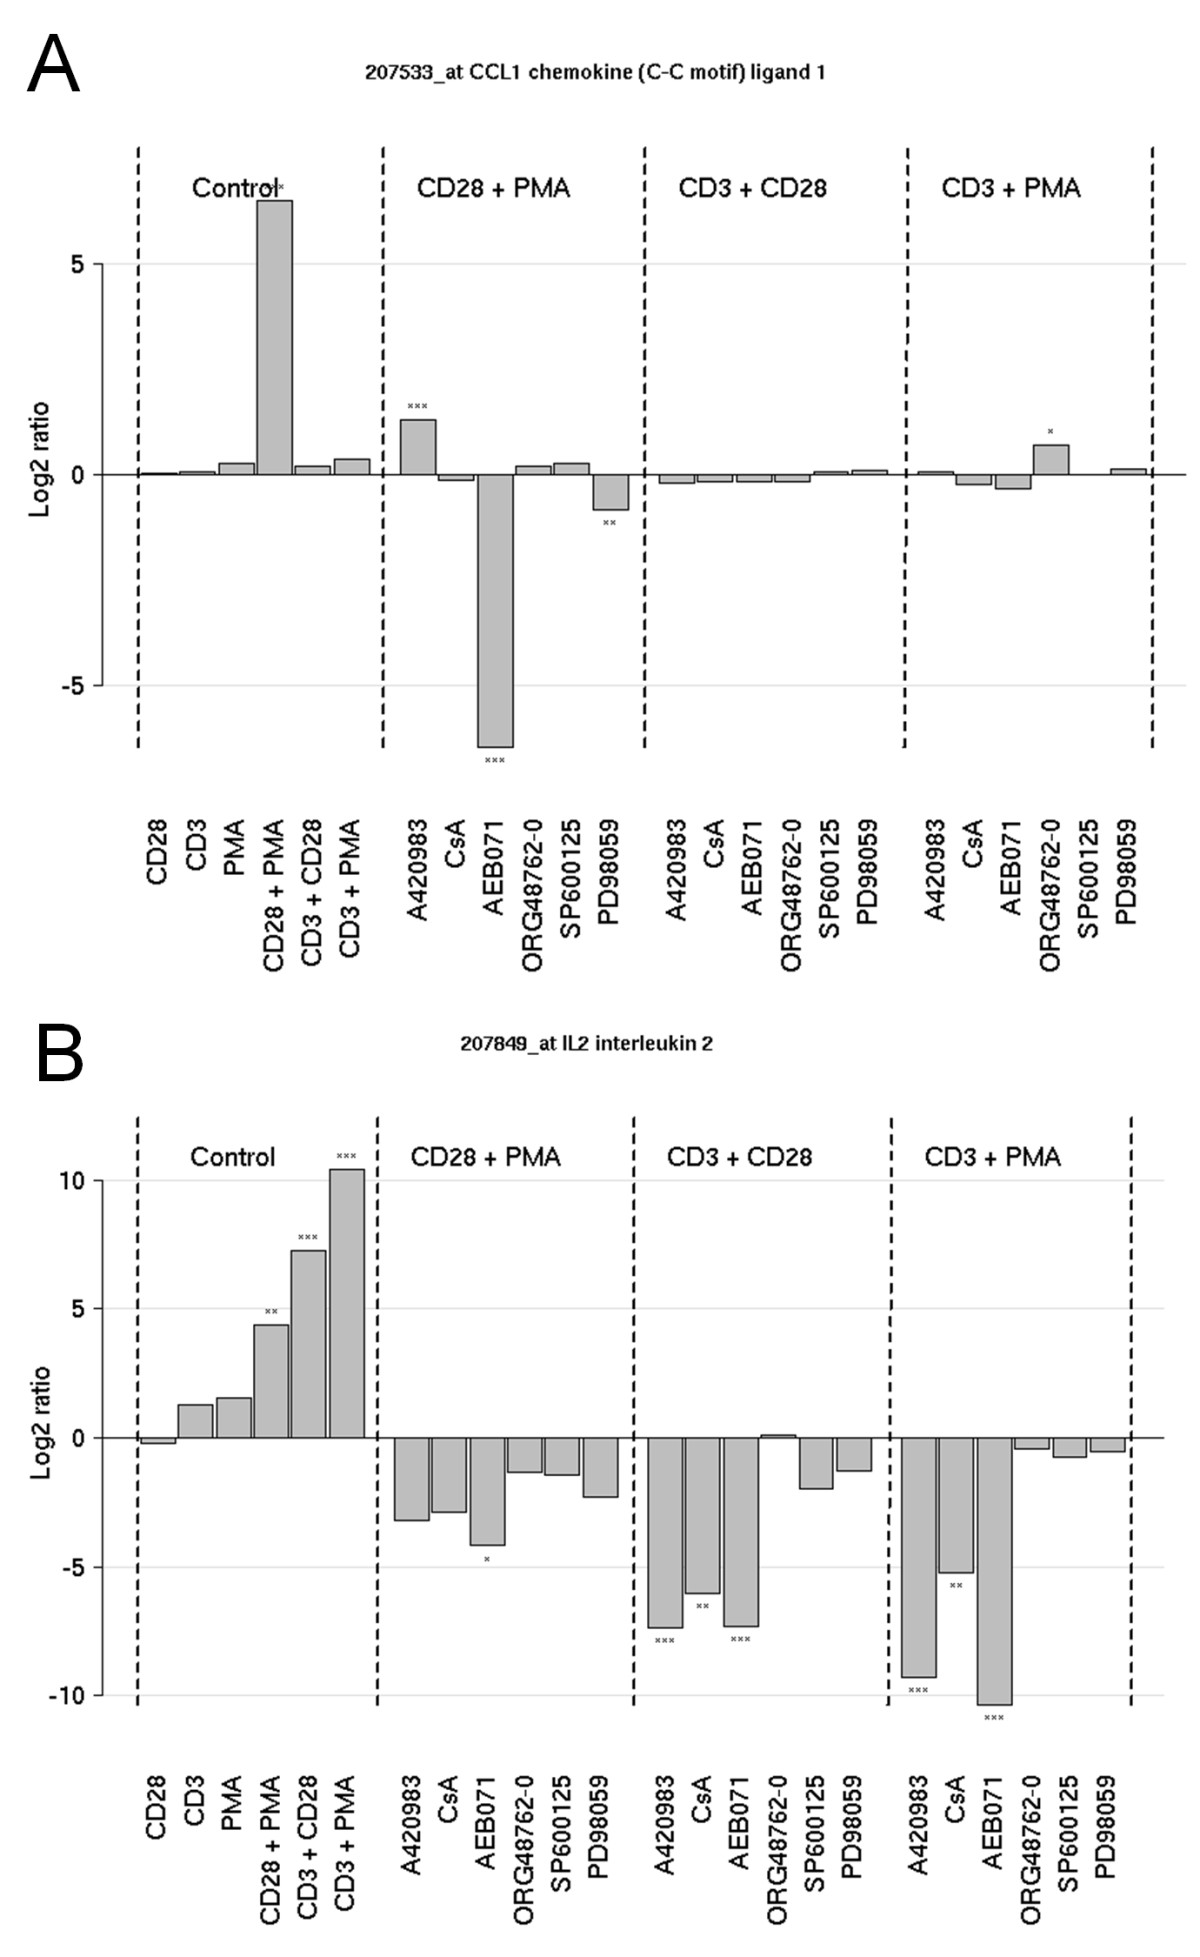 http://static-content.springer.com/image/art%3A10.1186%2F1471-2172-13-12/MediaObjects/12865_2011_Article_436_Fig4_HTML.jpg